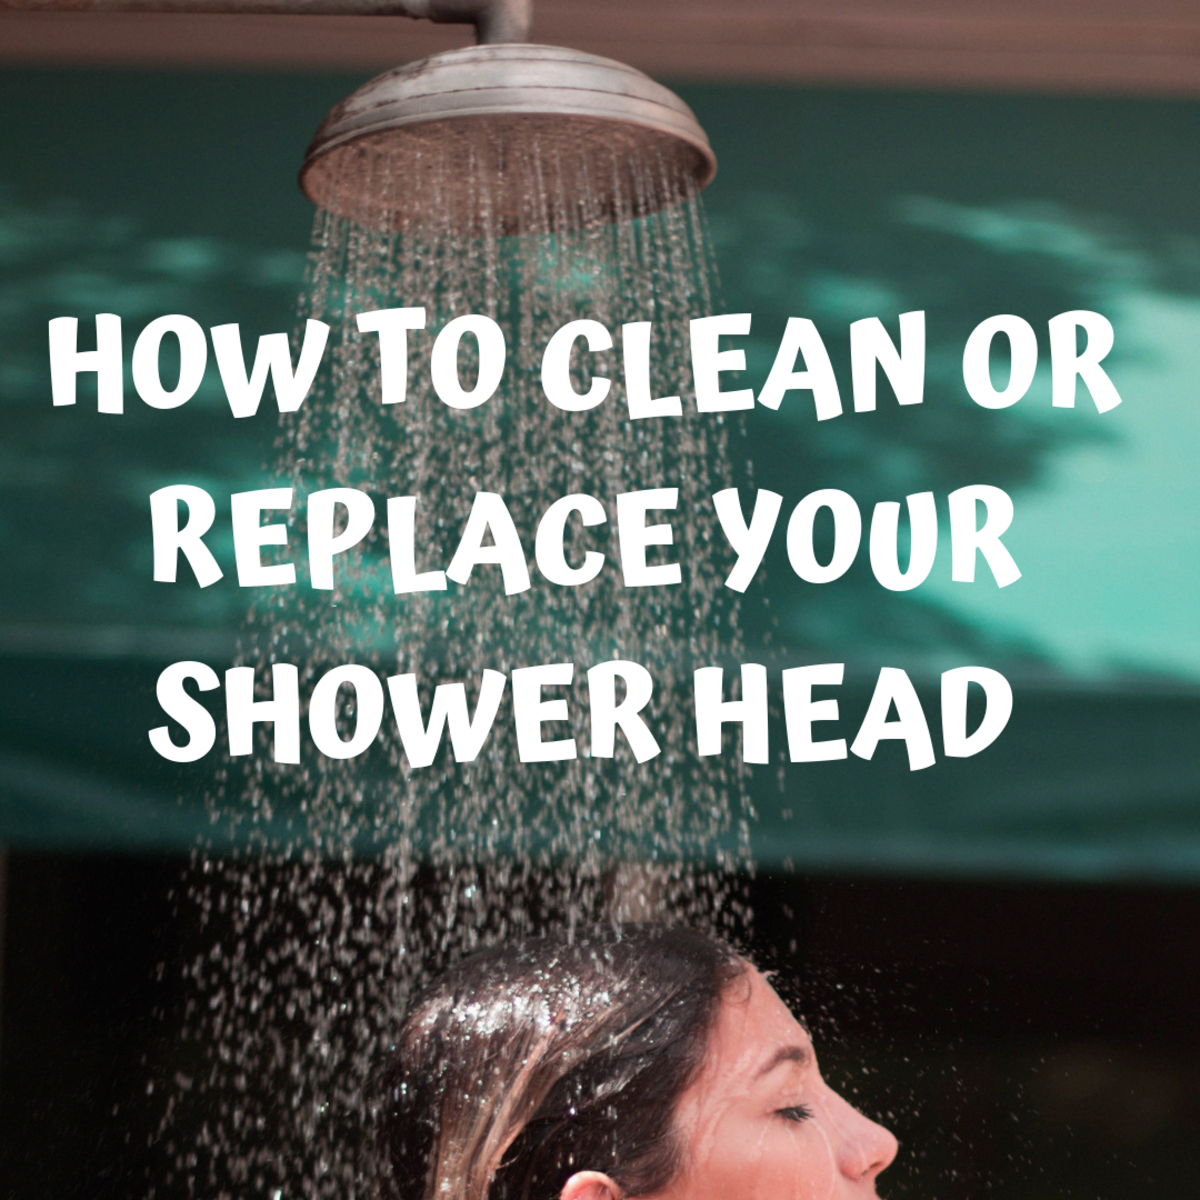 How to Clean or Replace Your Showerhead